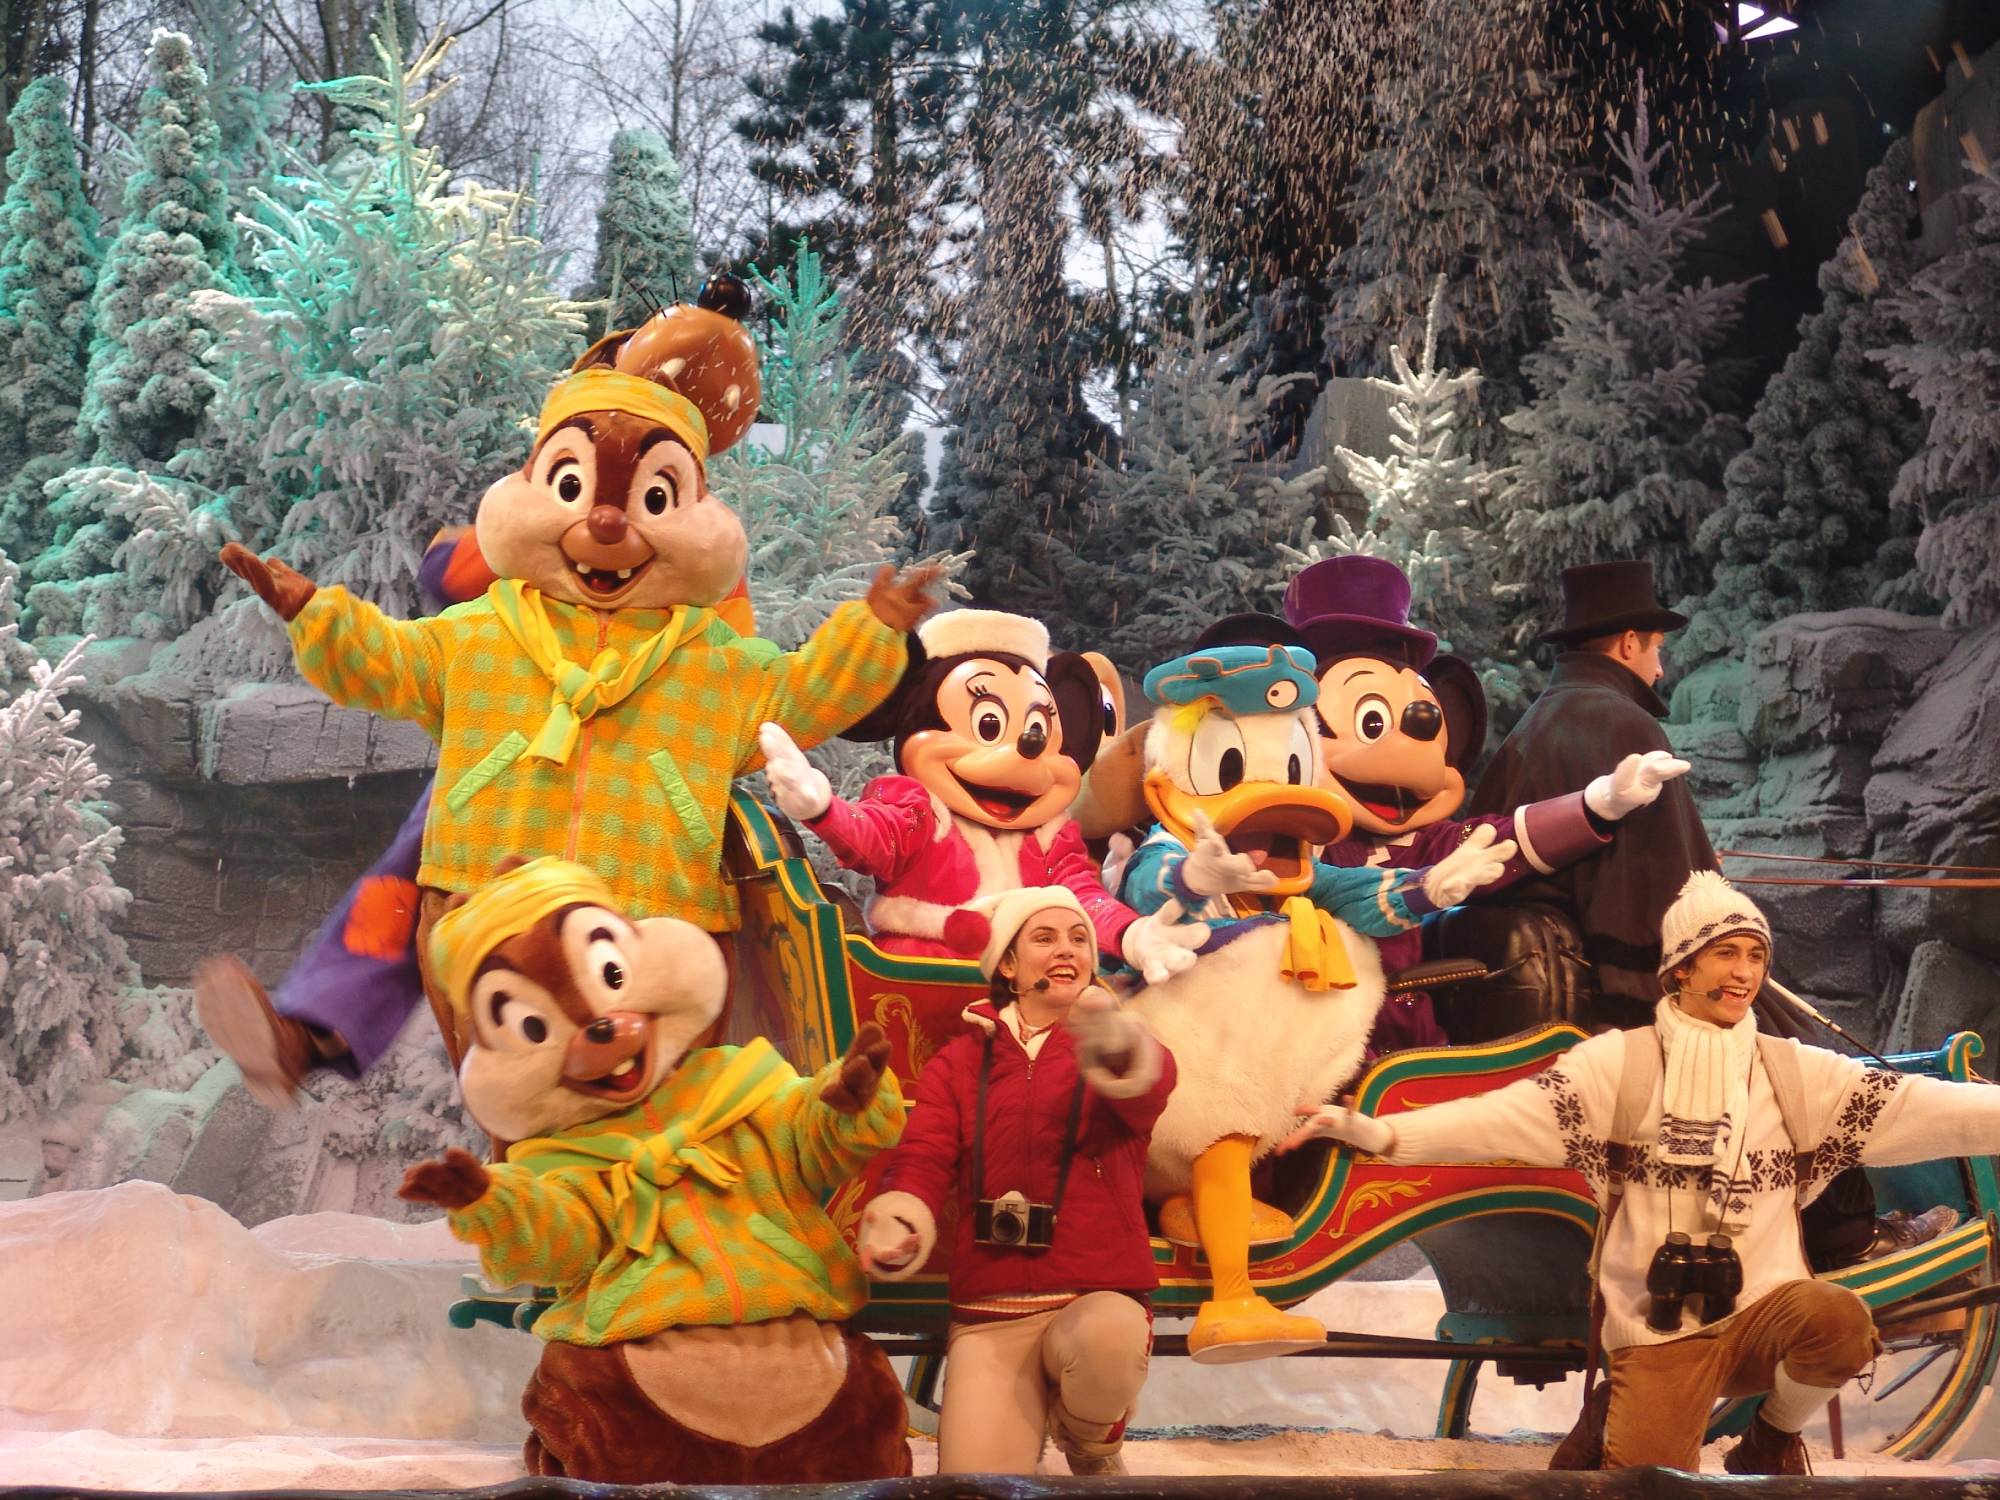 Disneyland Paris - Mickey's Winter Wonderland